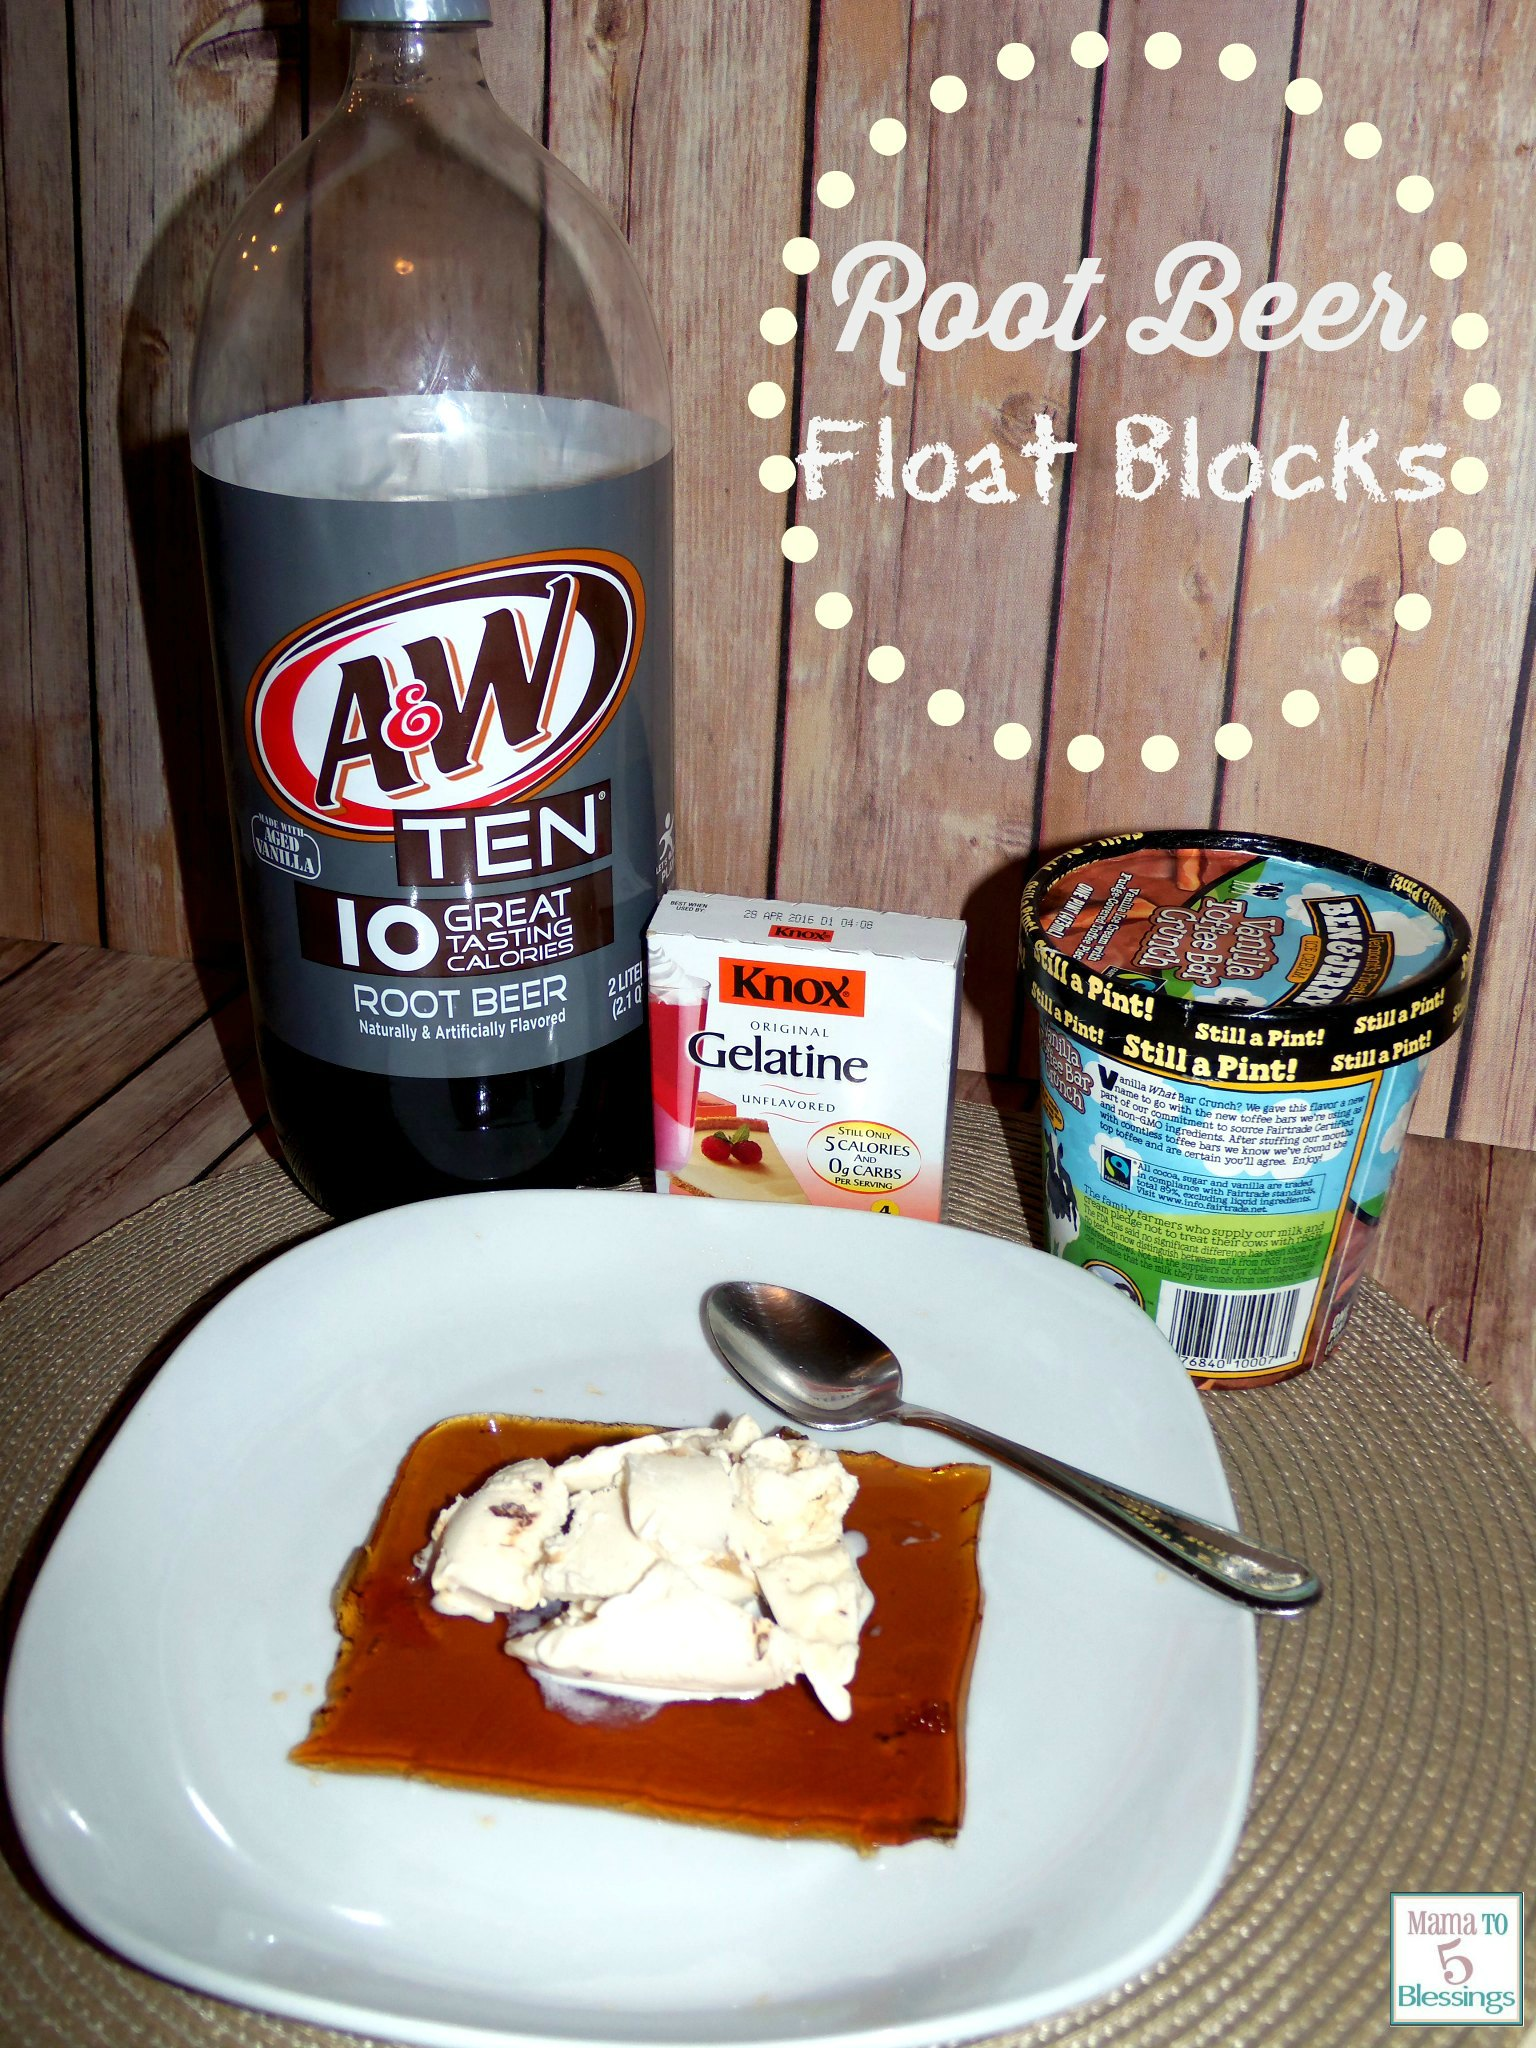 10 calorie root beer float blocks  pm